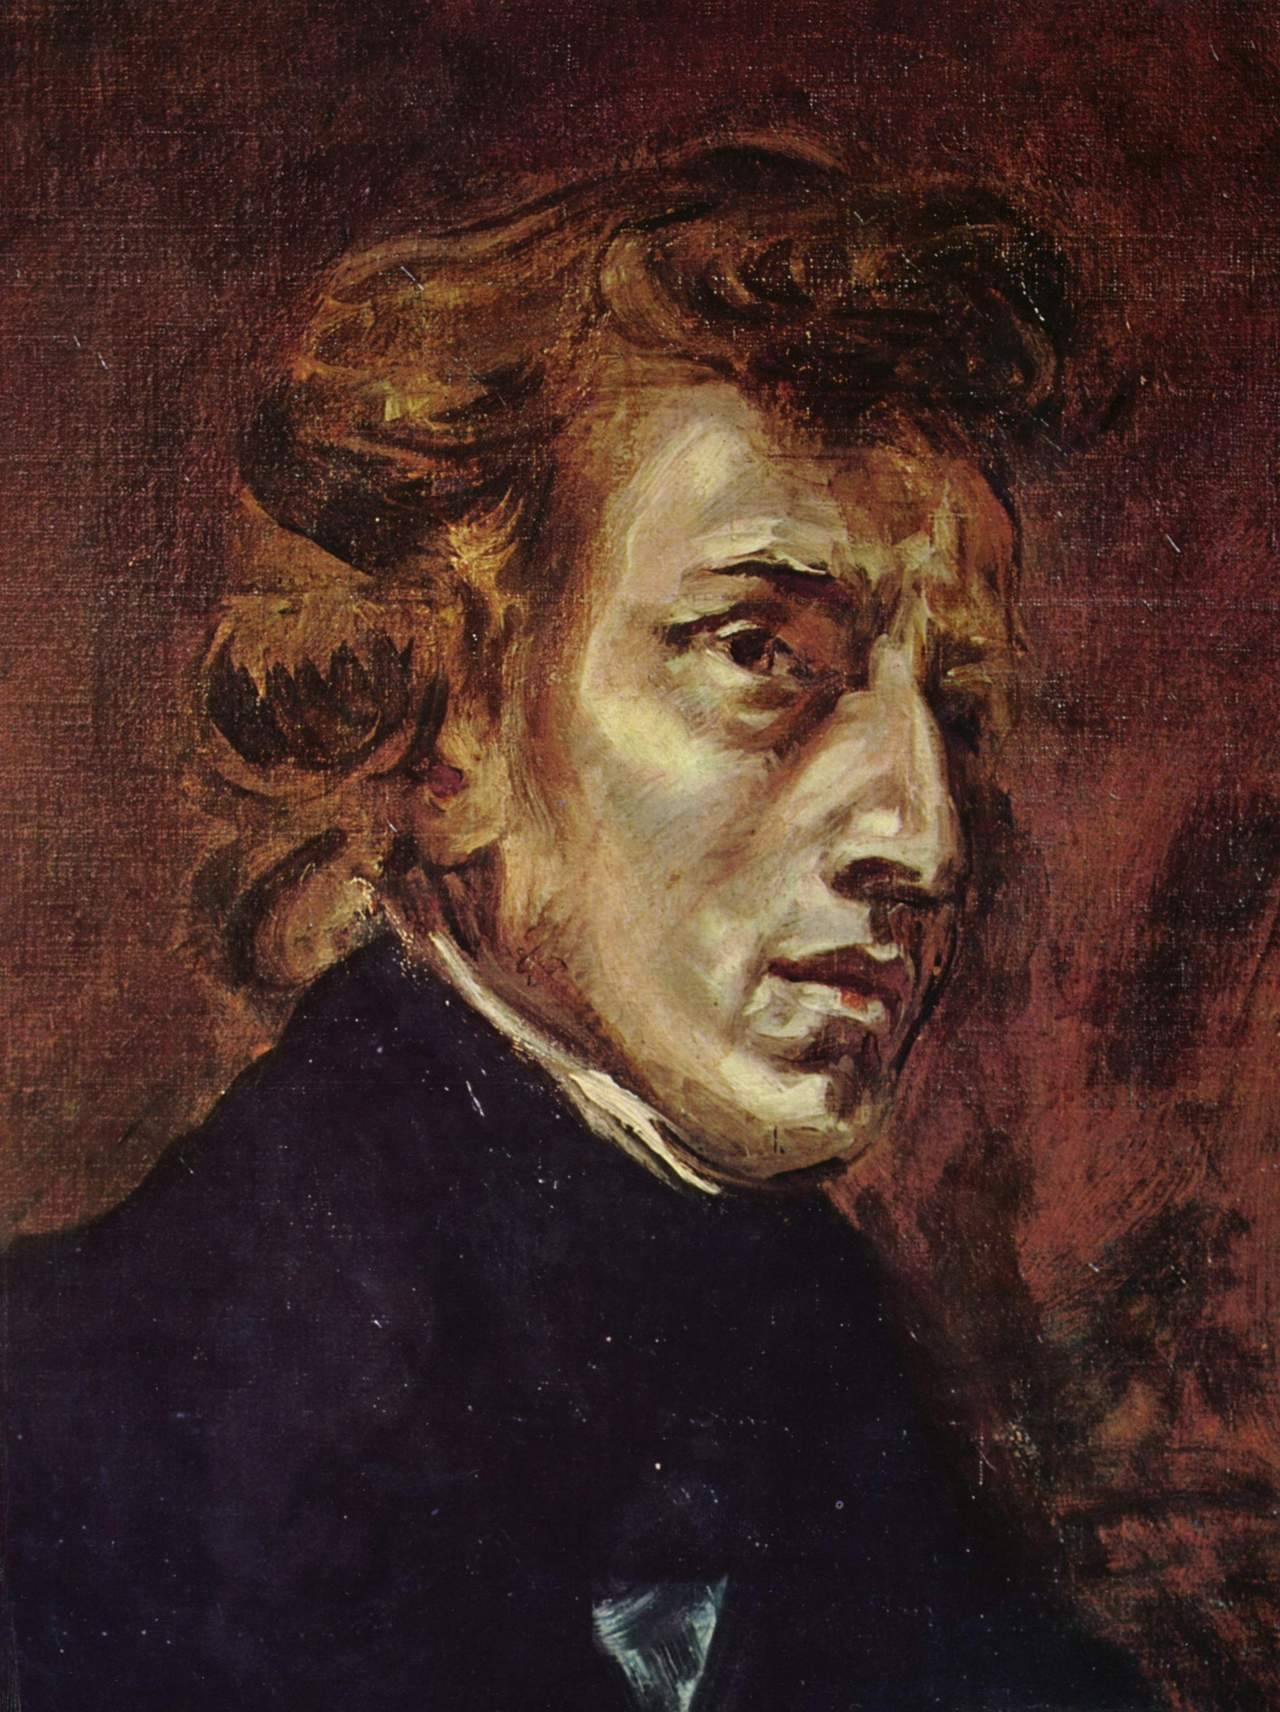 malebeautyinart:  Portrait of Frédéric ChopinEugène Delacroix (1798-1863) 1838 oil on canvas; originally part of a larger painting showing both Chopin and Georges Sand The Louvre Museum